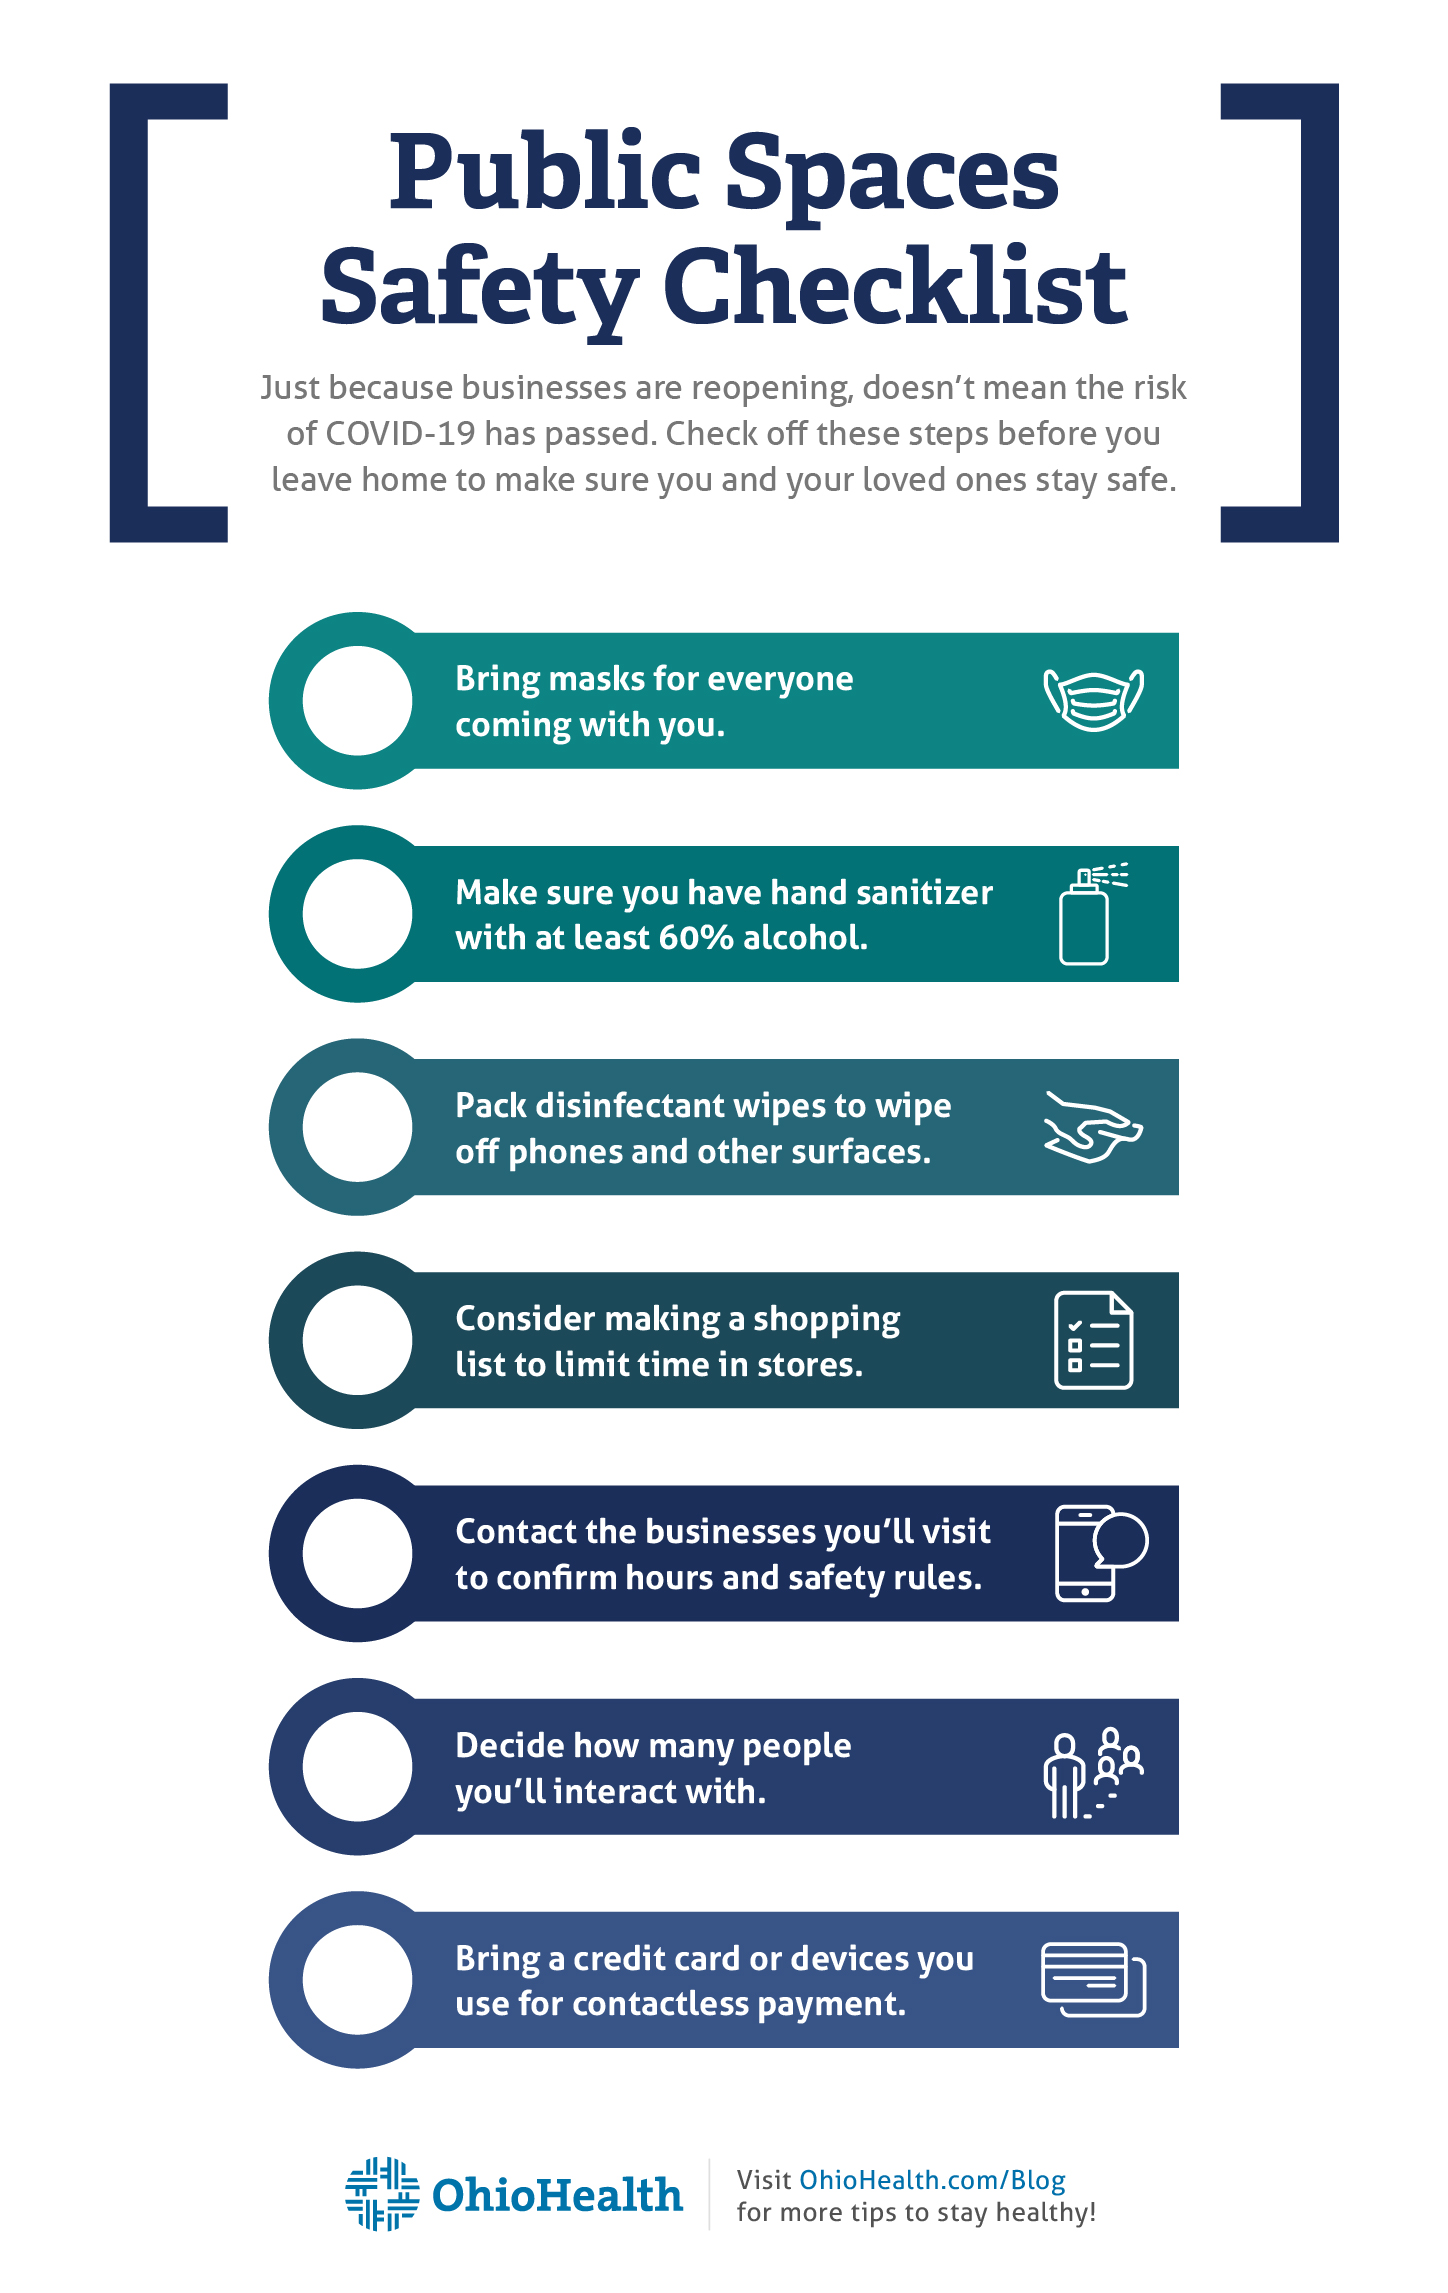 Checklist to use before leaving the house so as to practice safety in public spaces during COVID-19 pandemic